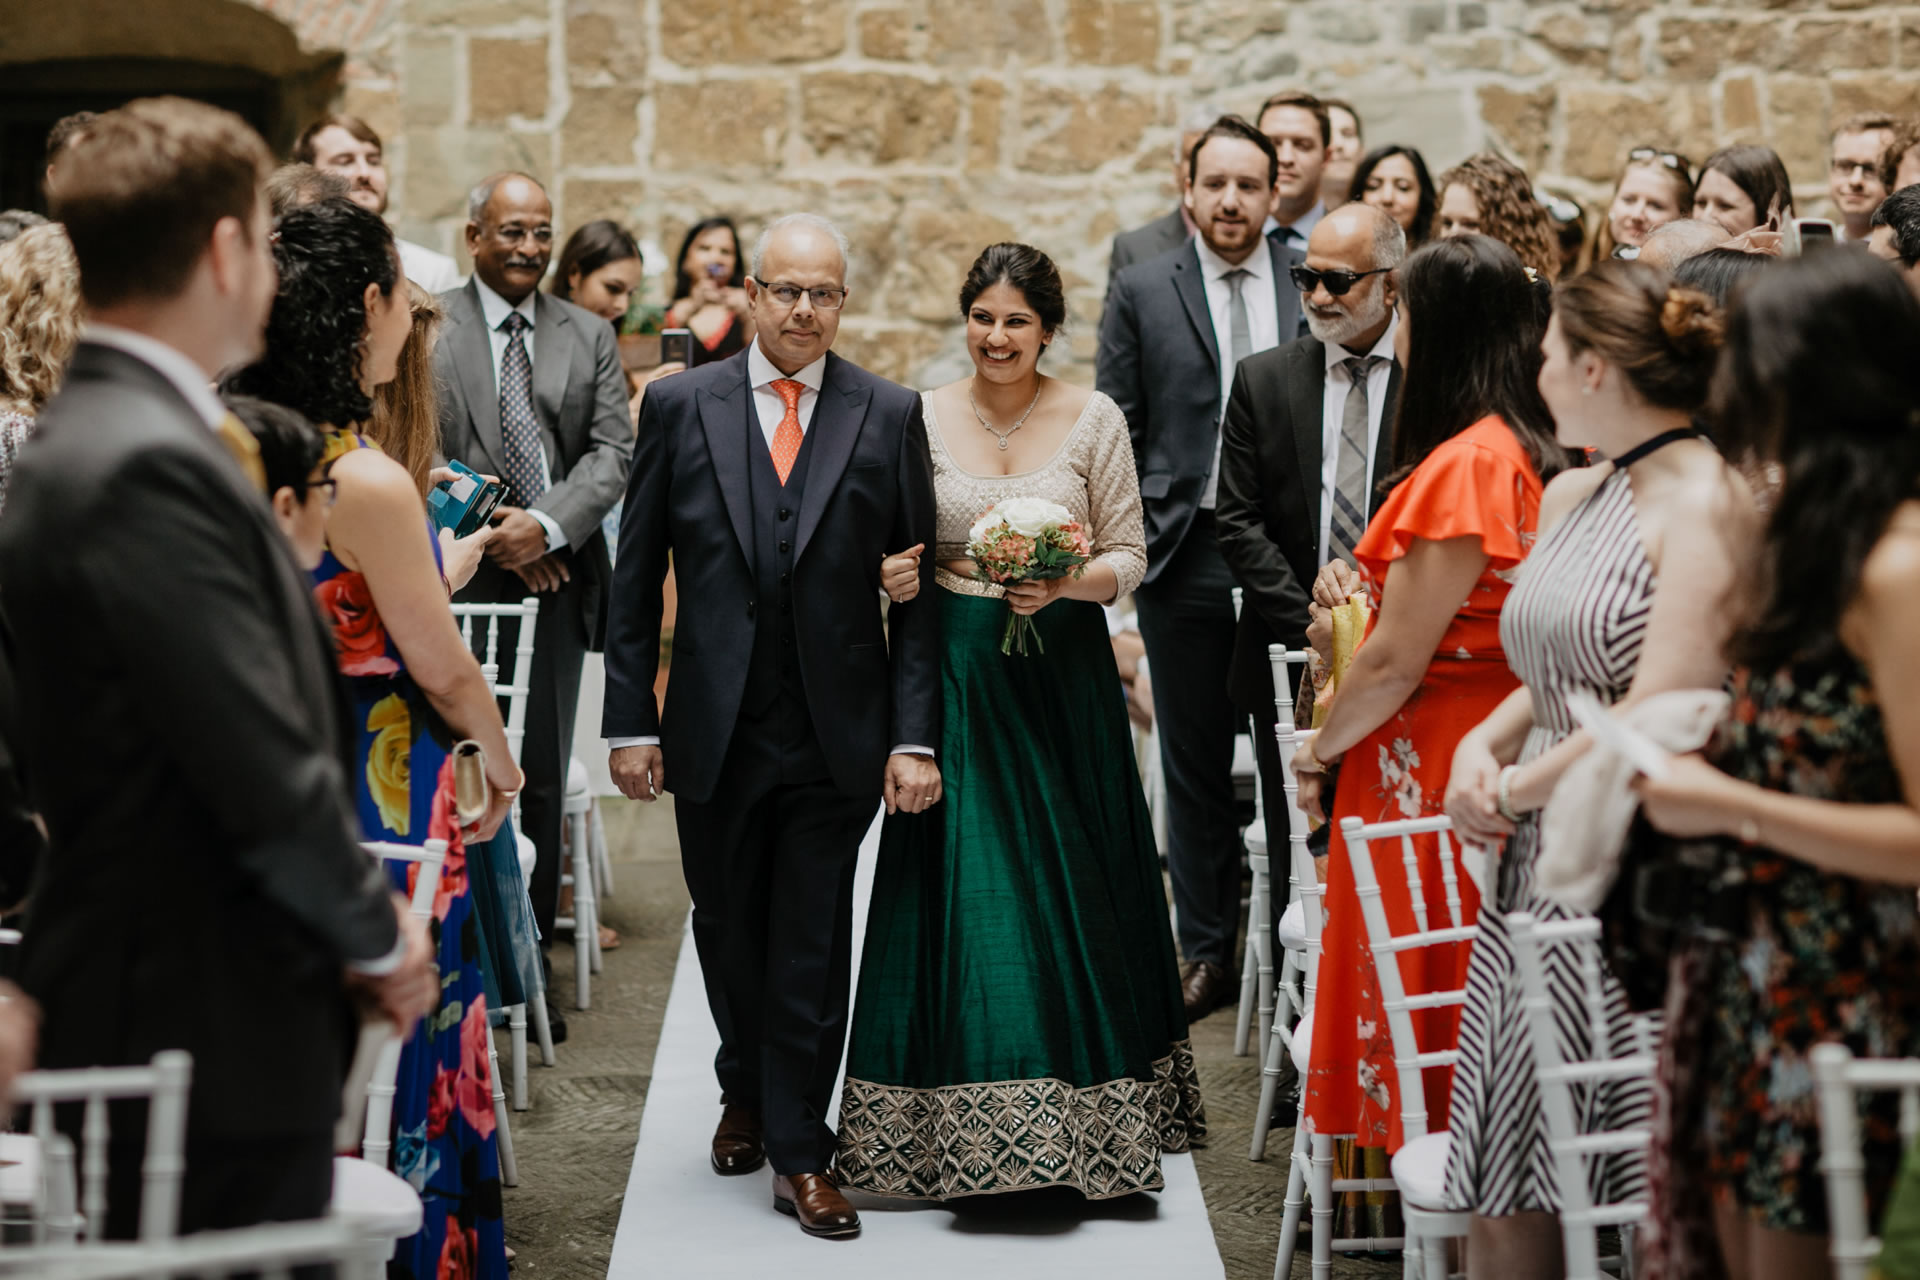 - 45 :: Indian wedding ceremony at Villa Pitiana :: Luxury wedding photography - 44 ::  - 45